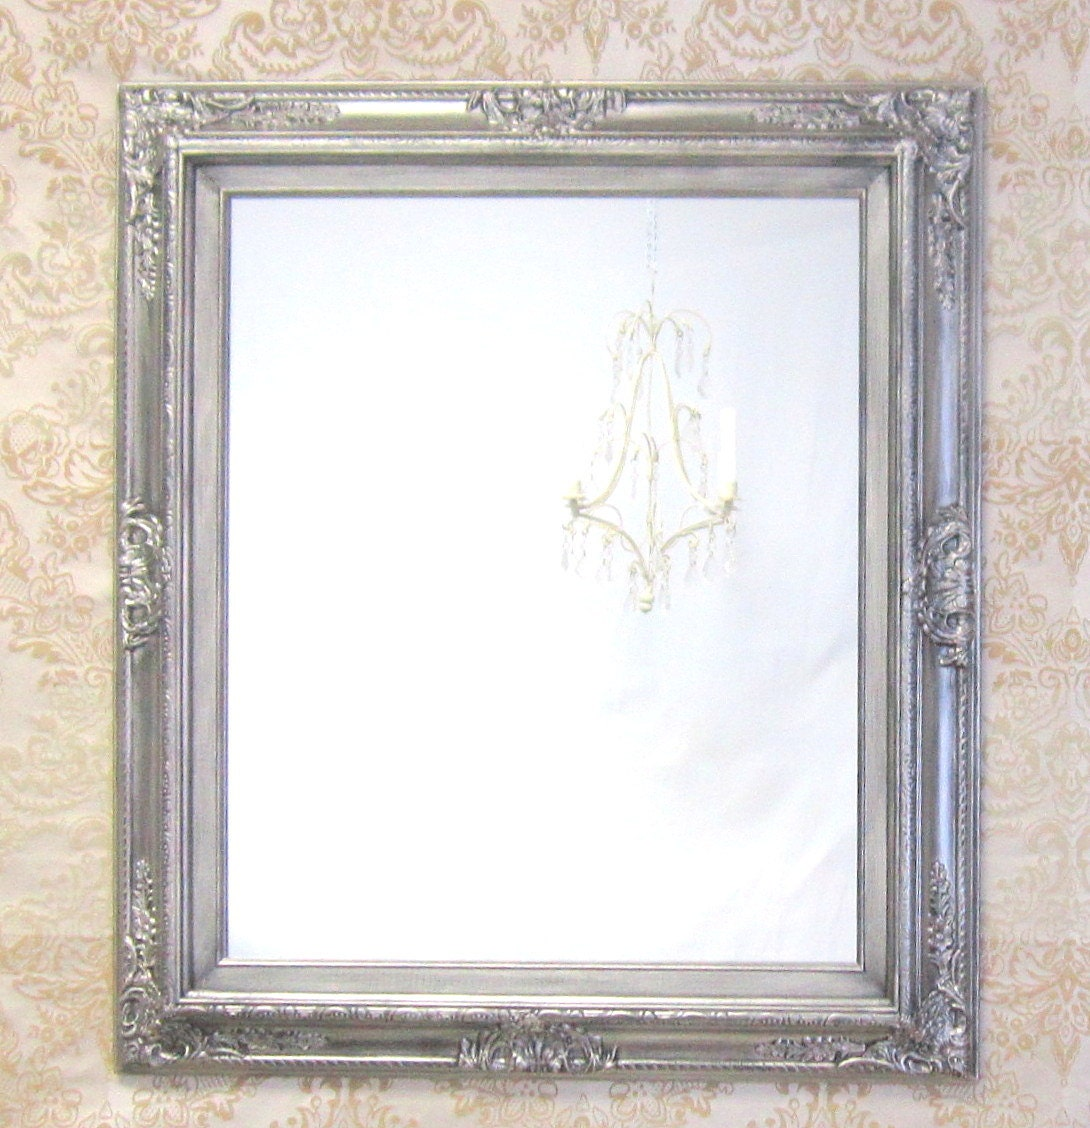 Decorative wall mirrors framed baroque vanity by for Fancy wall mirrors